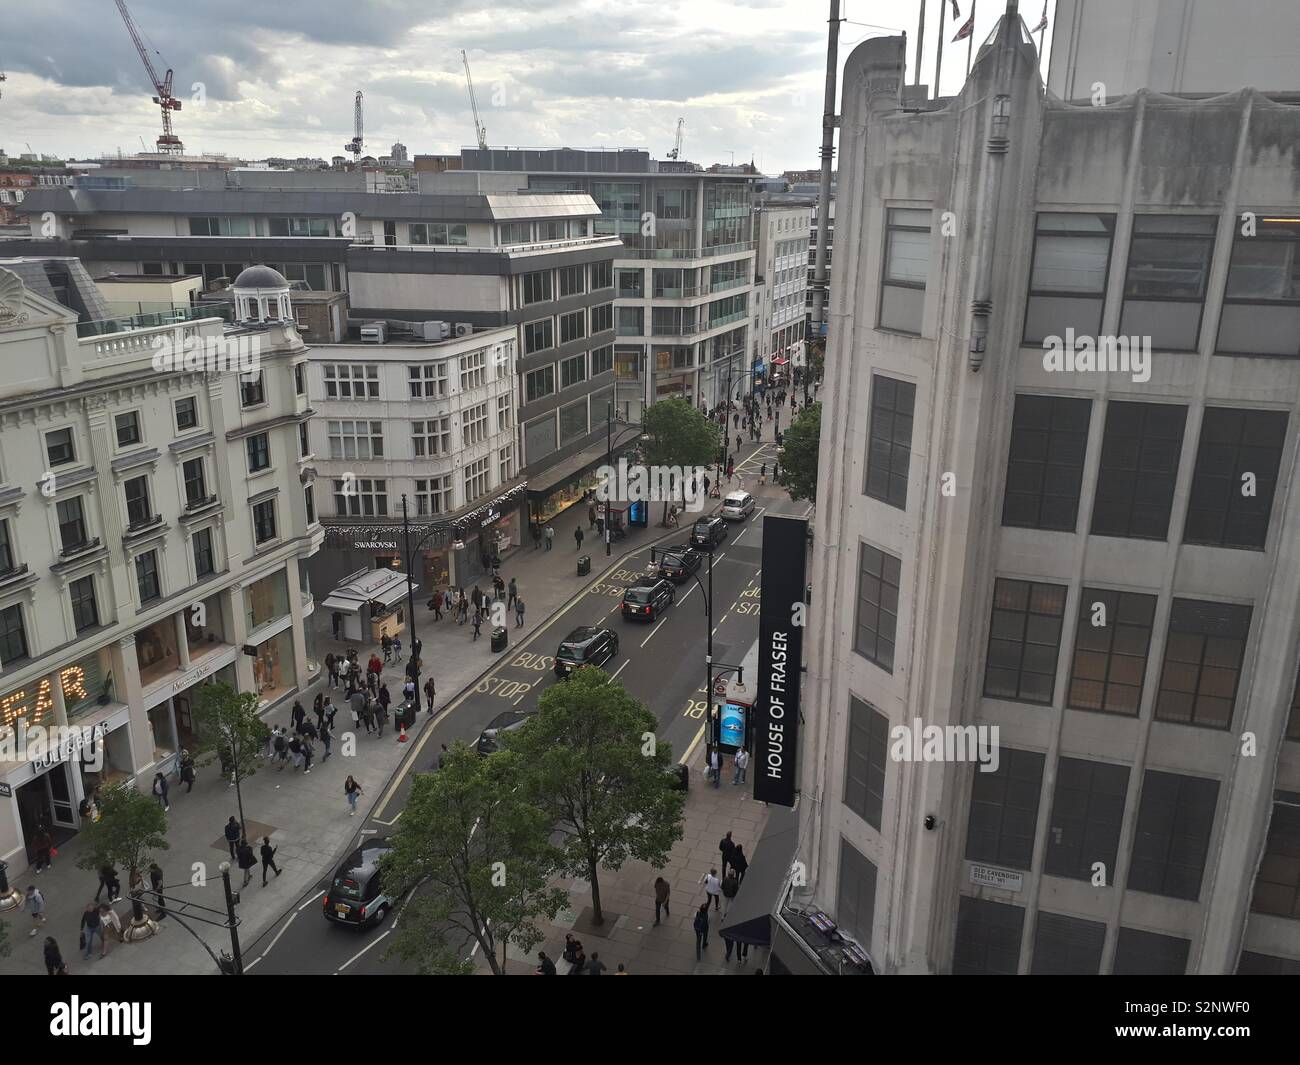 An arial view of Oxford St, London, taken from John Lewis, during spring. - Stock Image